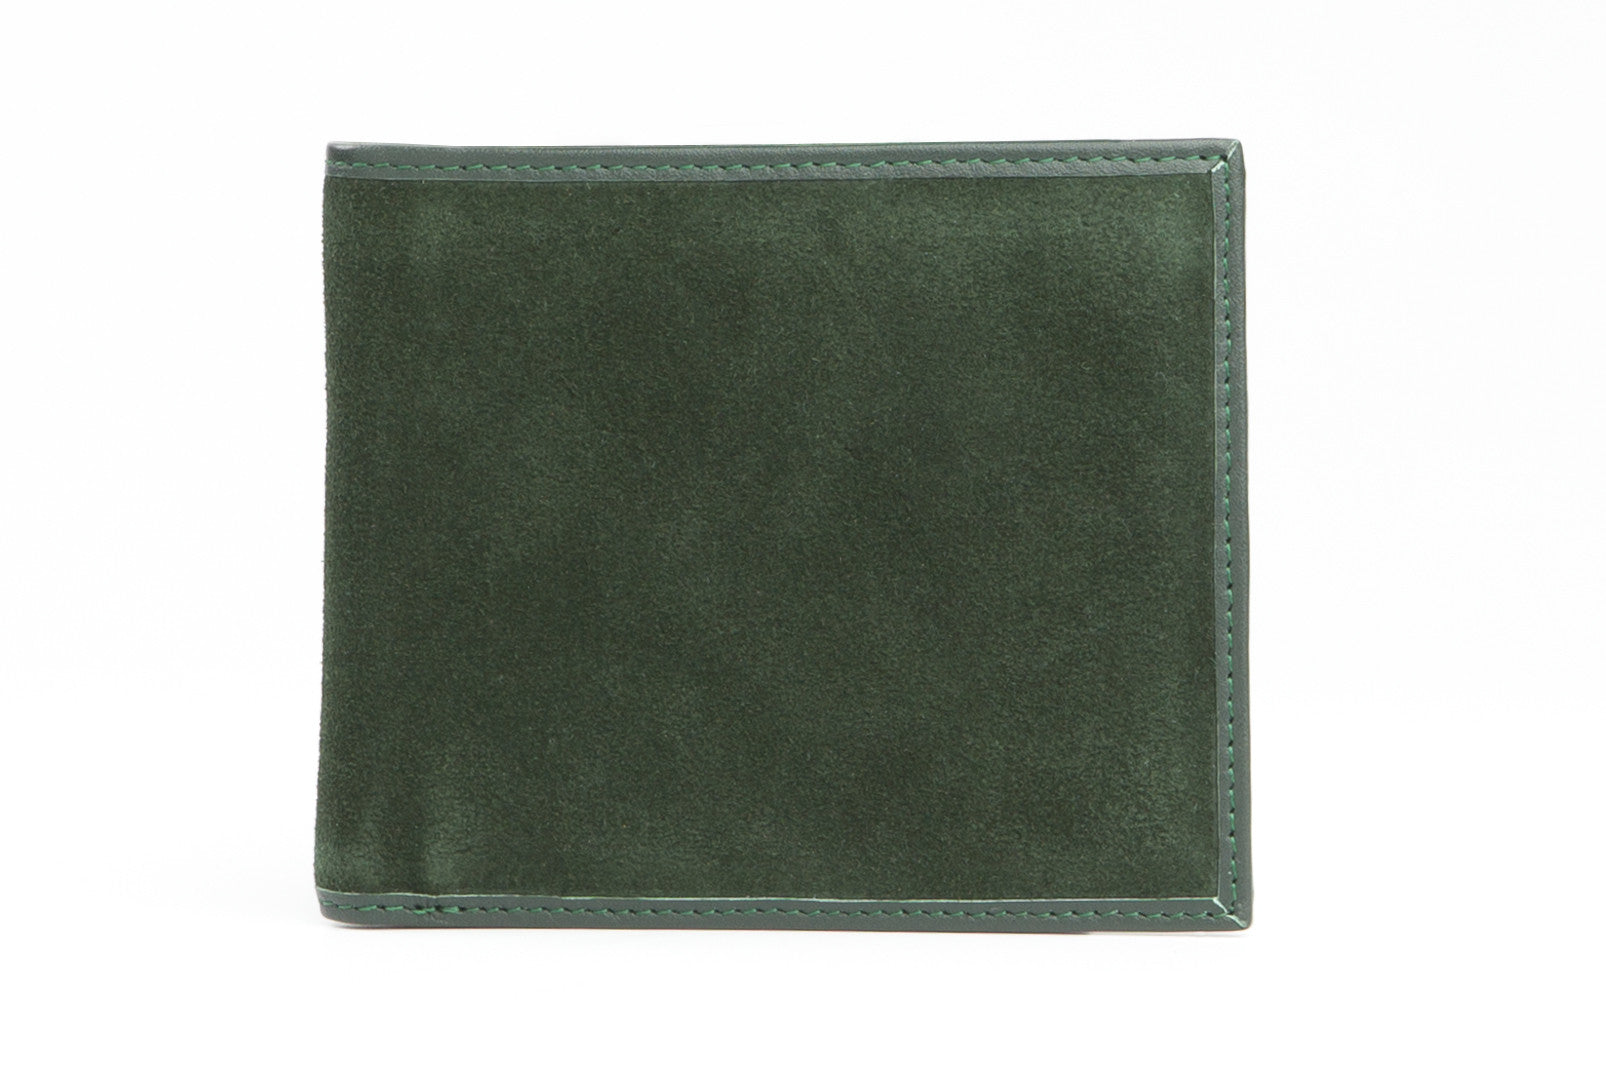 6ff8bfcd208cd Italian Classic Bi-fold Mens Leather Wallet - Forest Green - Avallone - 1